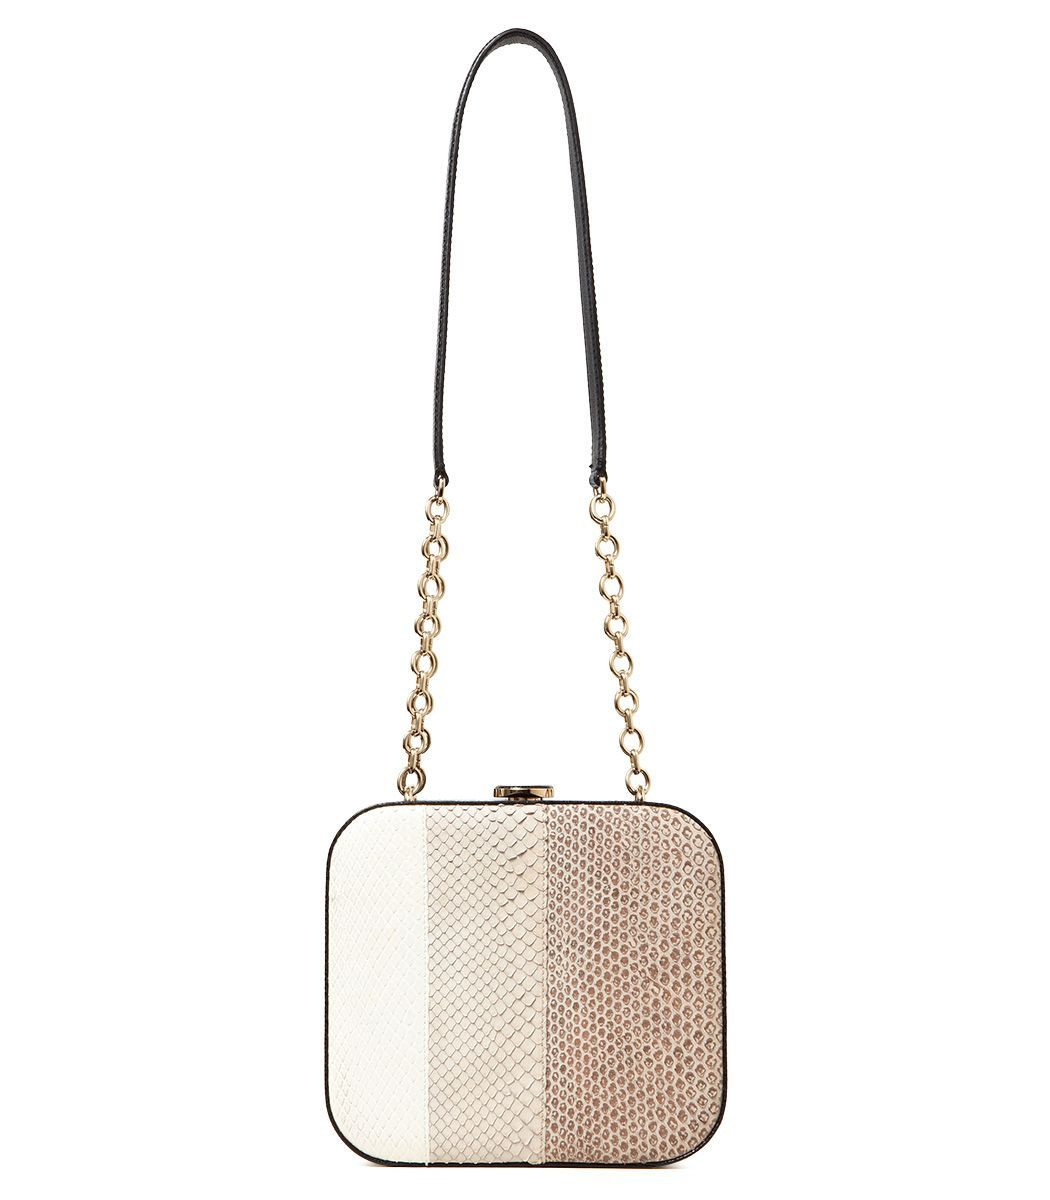 5ed72892edf2 This Bally Delfina snakeskin box clutch on  ShopBAZAAR can also be worn  with the gold chain strap as a chic cross-body bag.